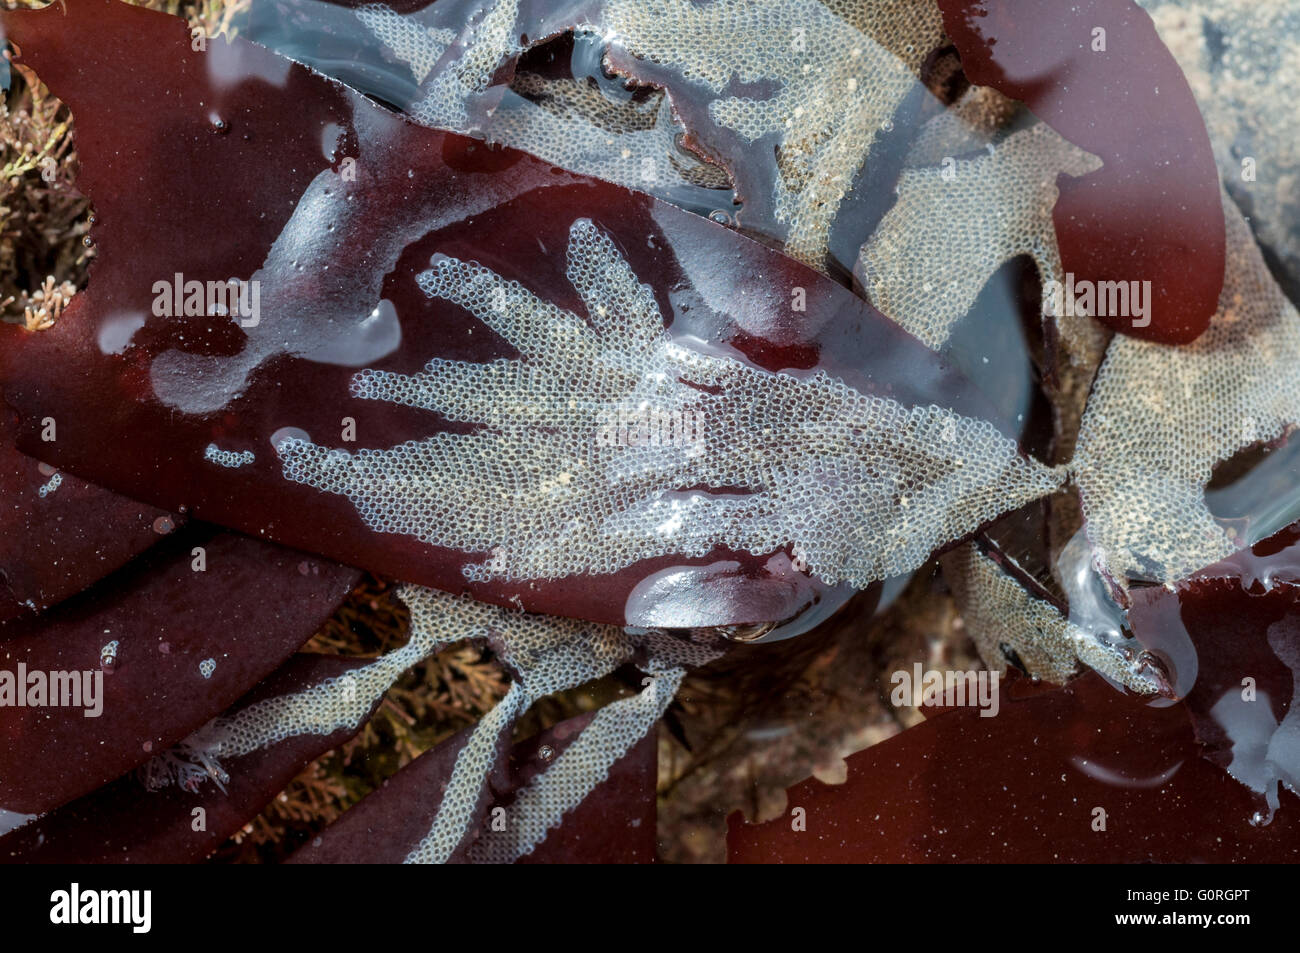 The common colonial Bryozoan Hairy Sea-mat on a red seaweed Stock Photo